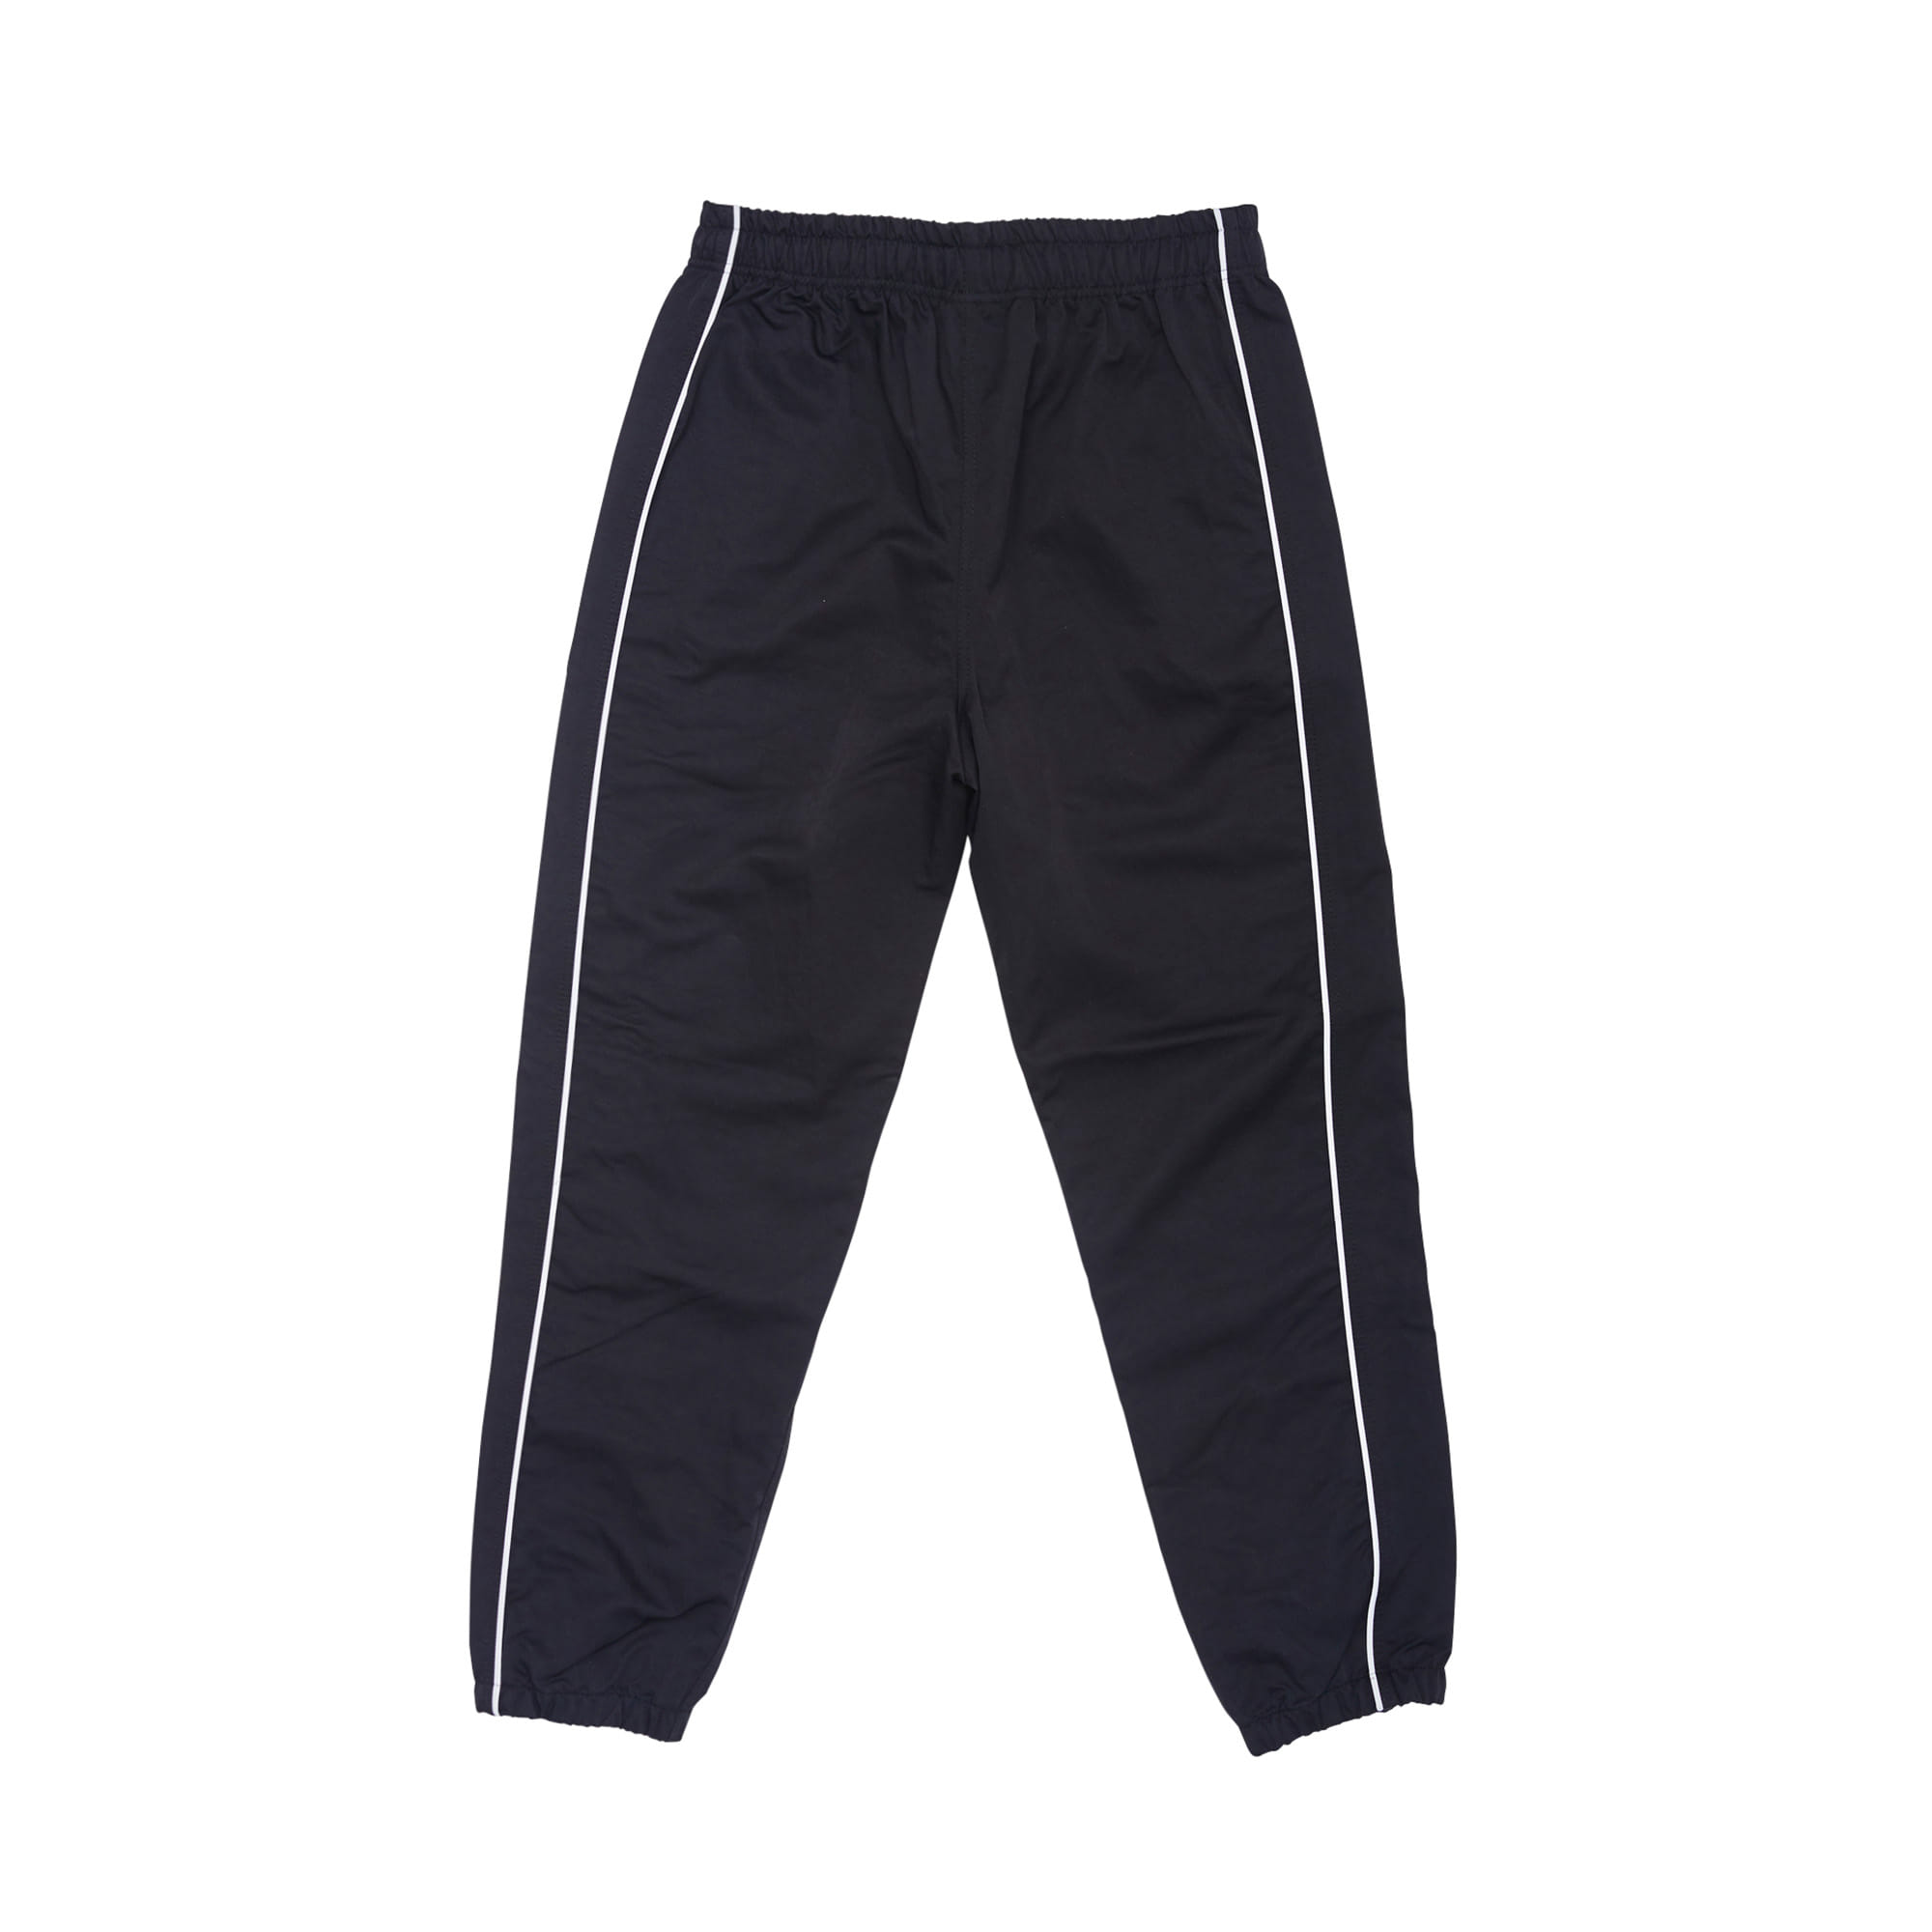 BSRABBIT BSR WASHING TWILL JOGGER PANTS BLACK